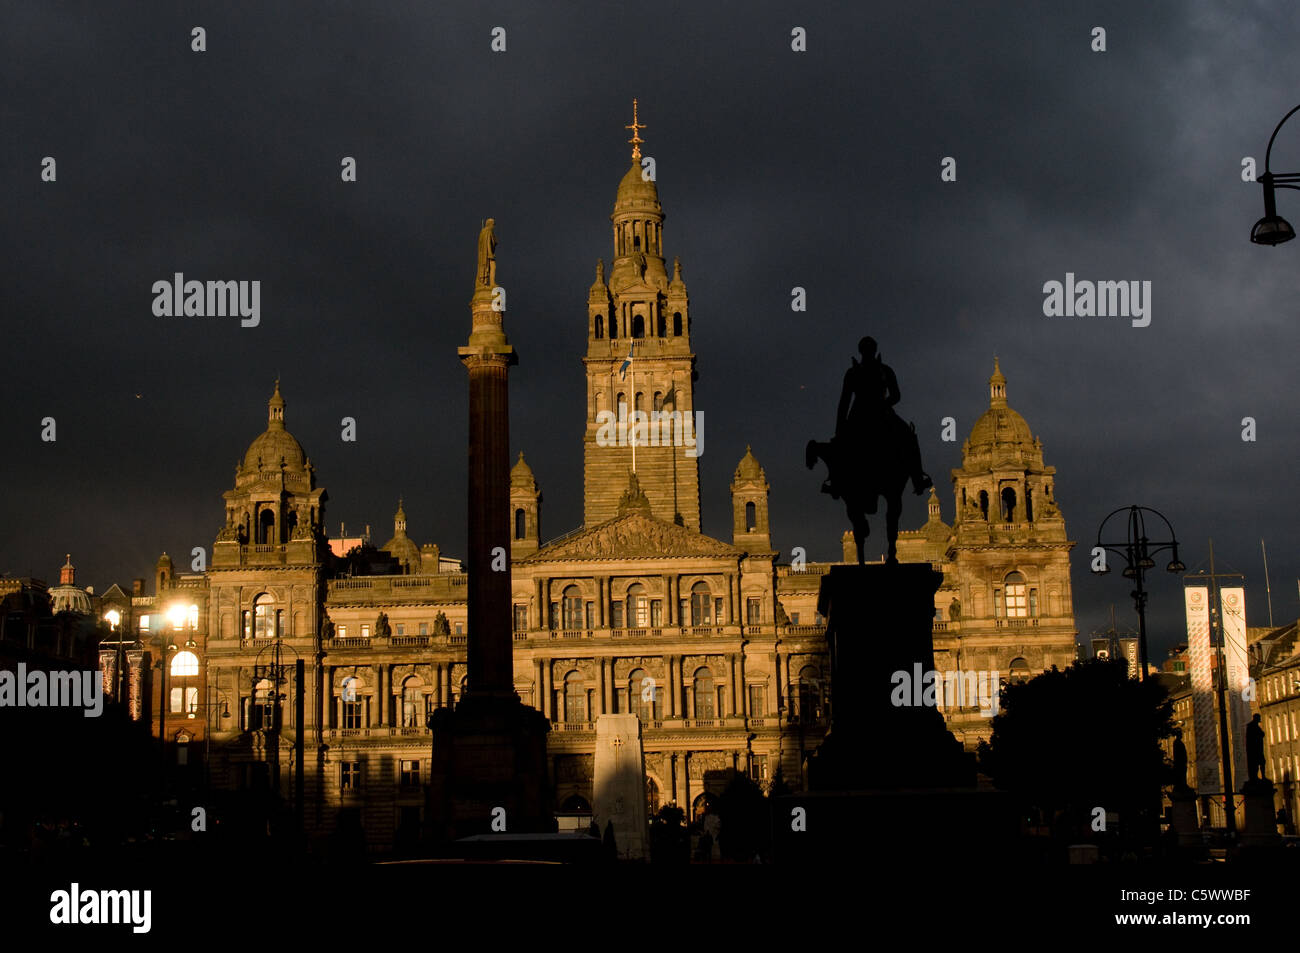 City Chambers, Glasgow's main public building is illuminated by strong evening sunlight, with a dark stormy - Stock Image